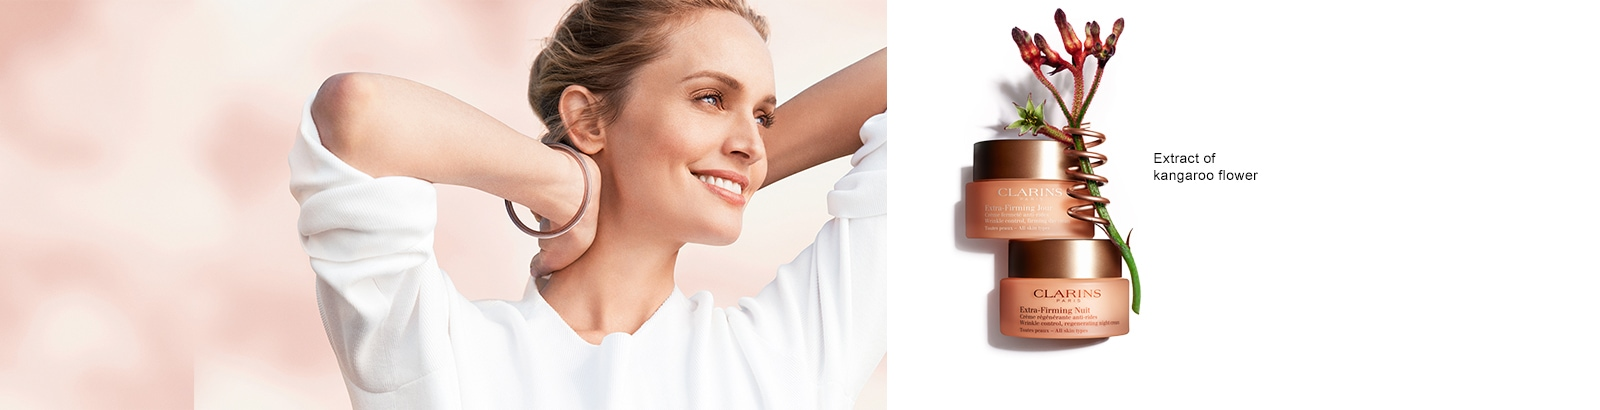 Clarins Extra Firming Facial at Frontlinestyle Bath & Wells